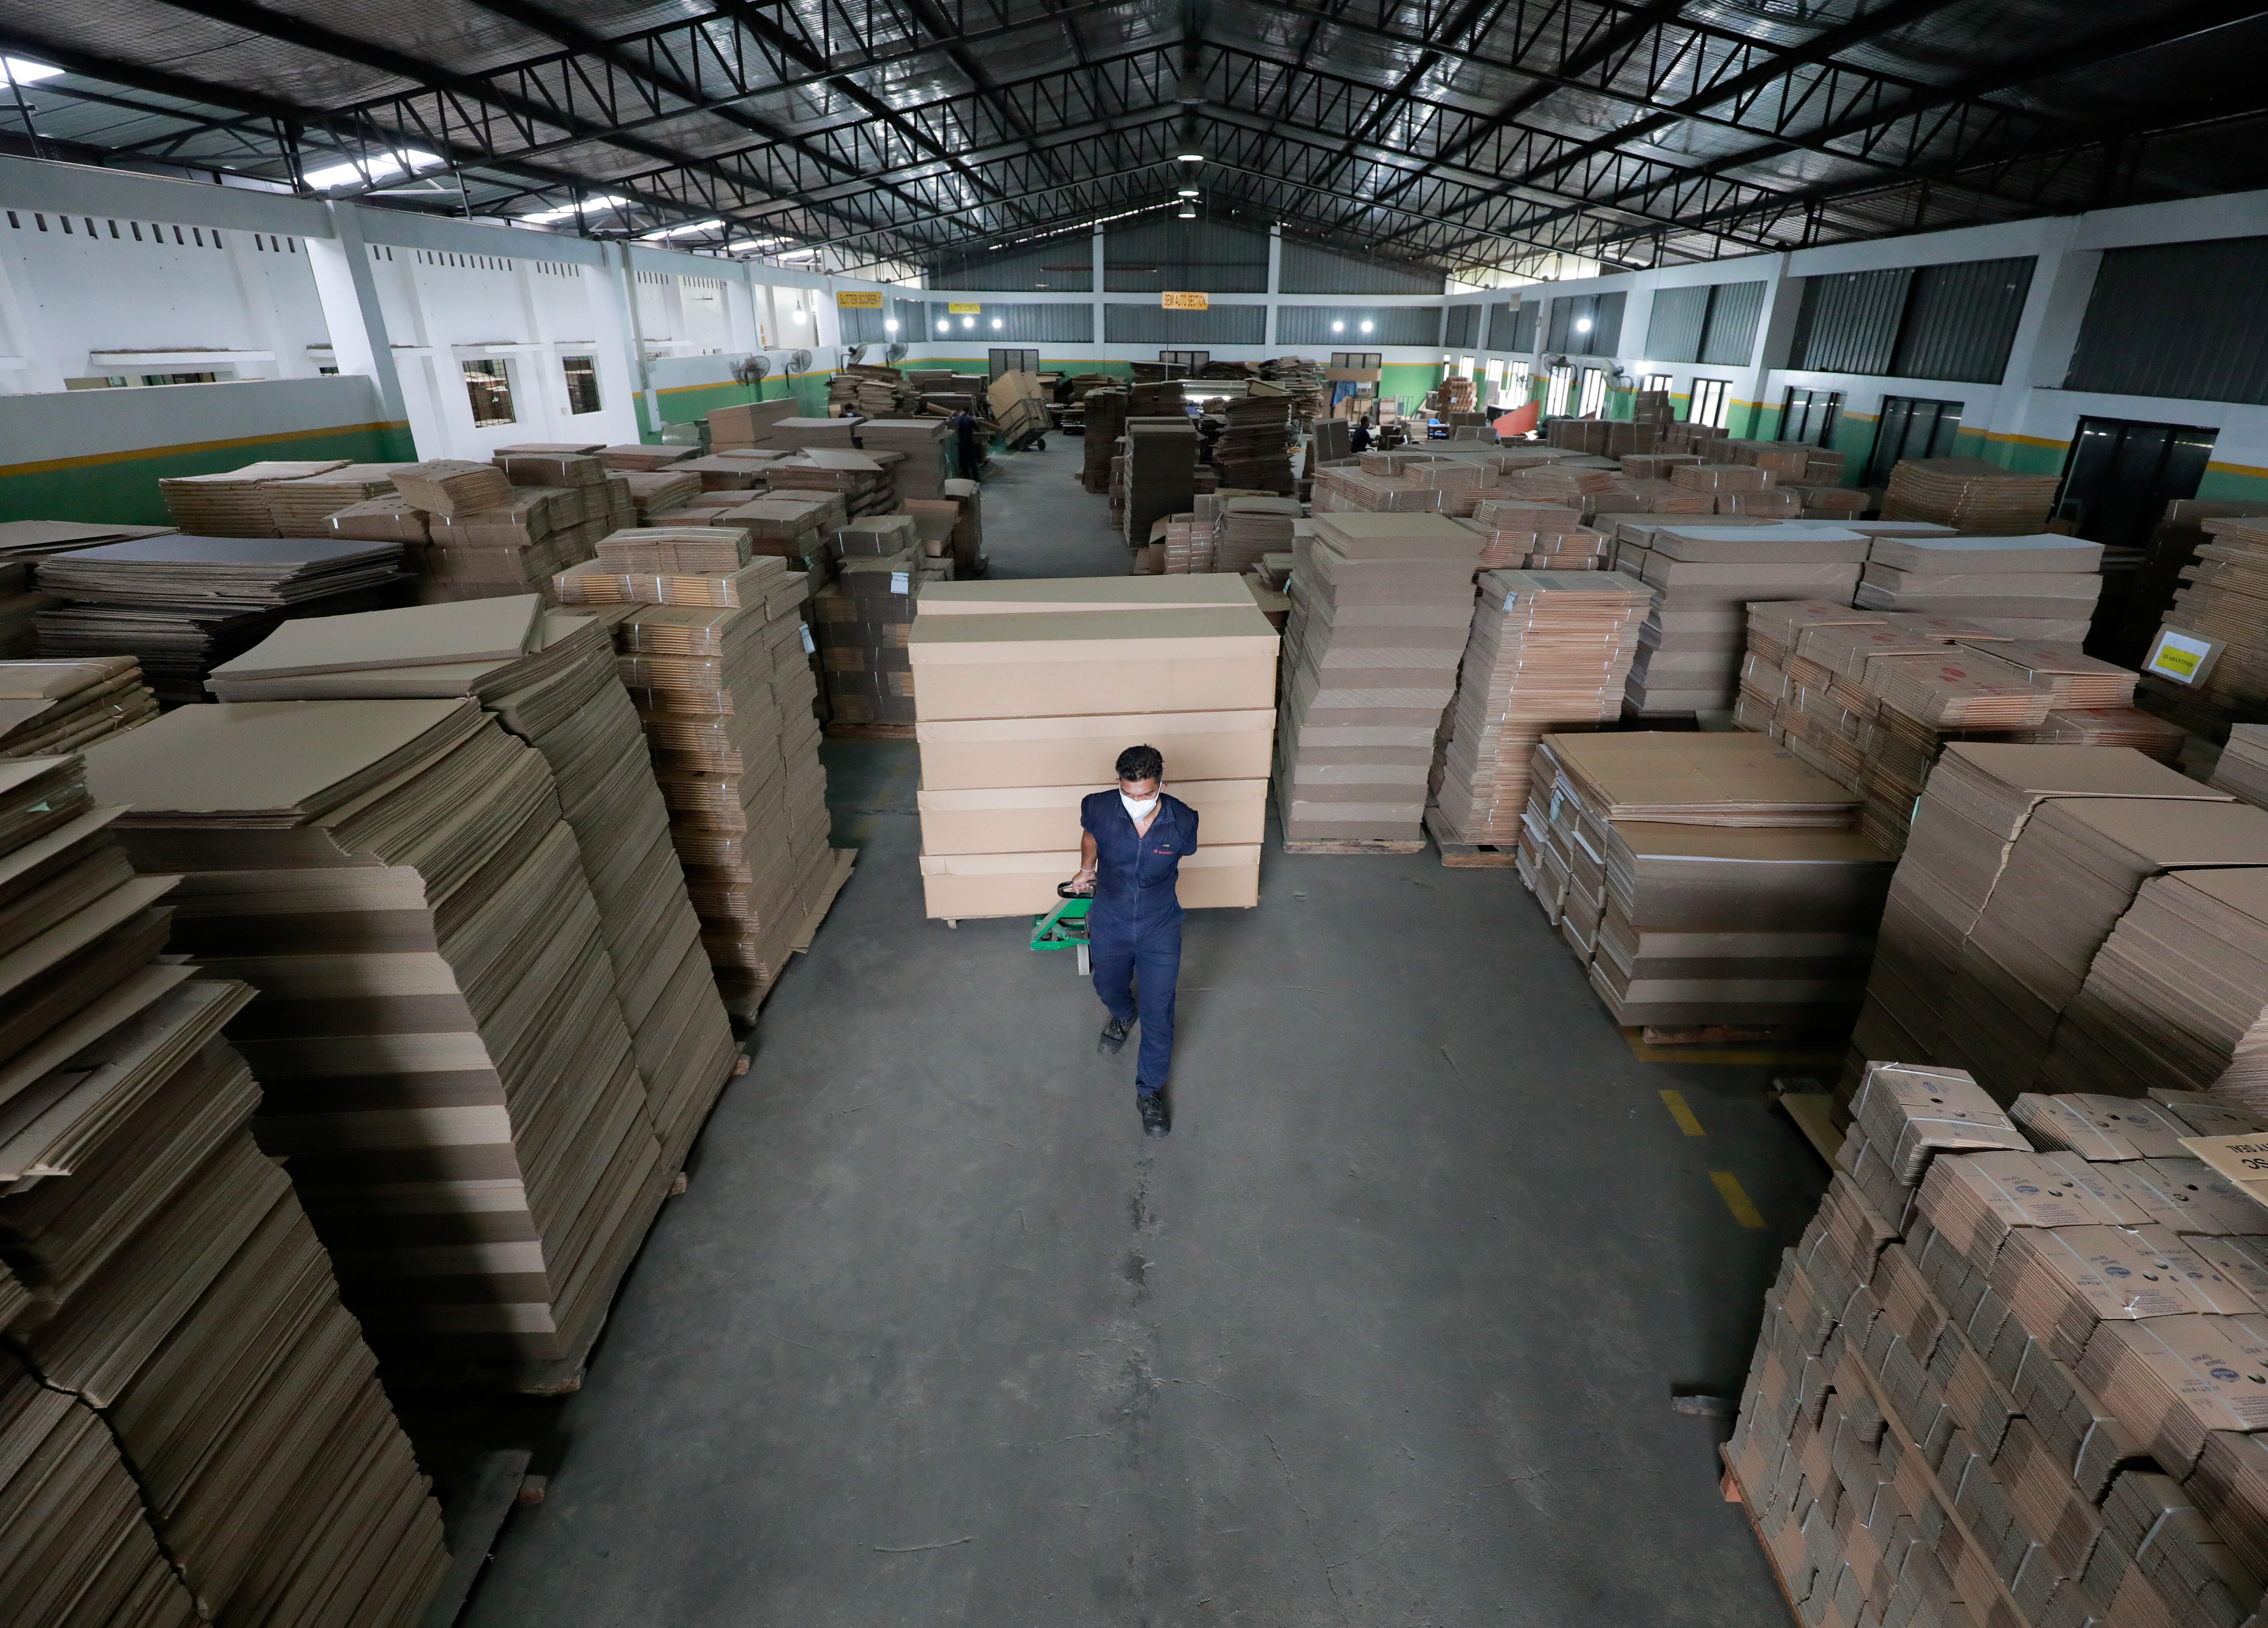 A worker carries cardboard coffins to load into a truck at a factory, amid the coronavirus disease (COVID-19) pandemic, on the outskirts of Colombo, Sri Lanka August 7, 2021. Picture taken August 7, 2021. REUTERS/Dinuka Liyanawatte